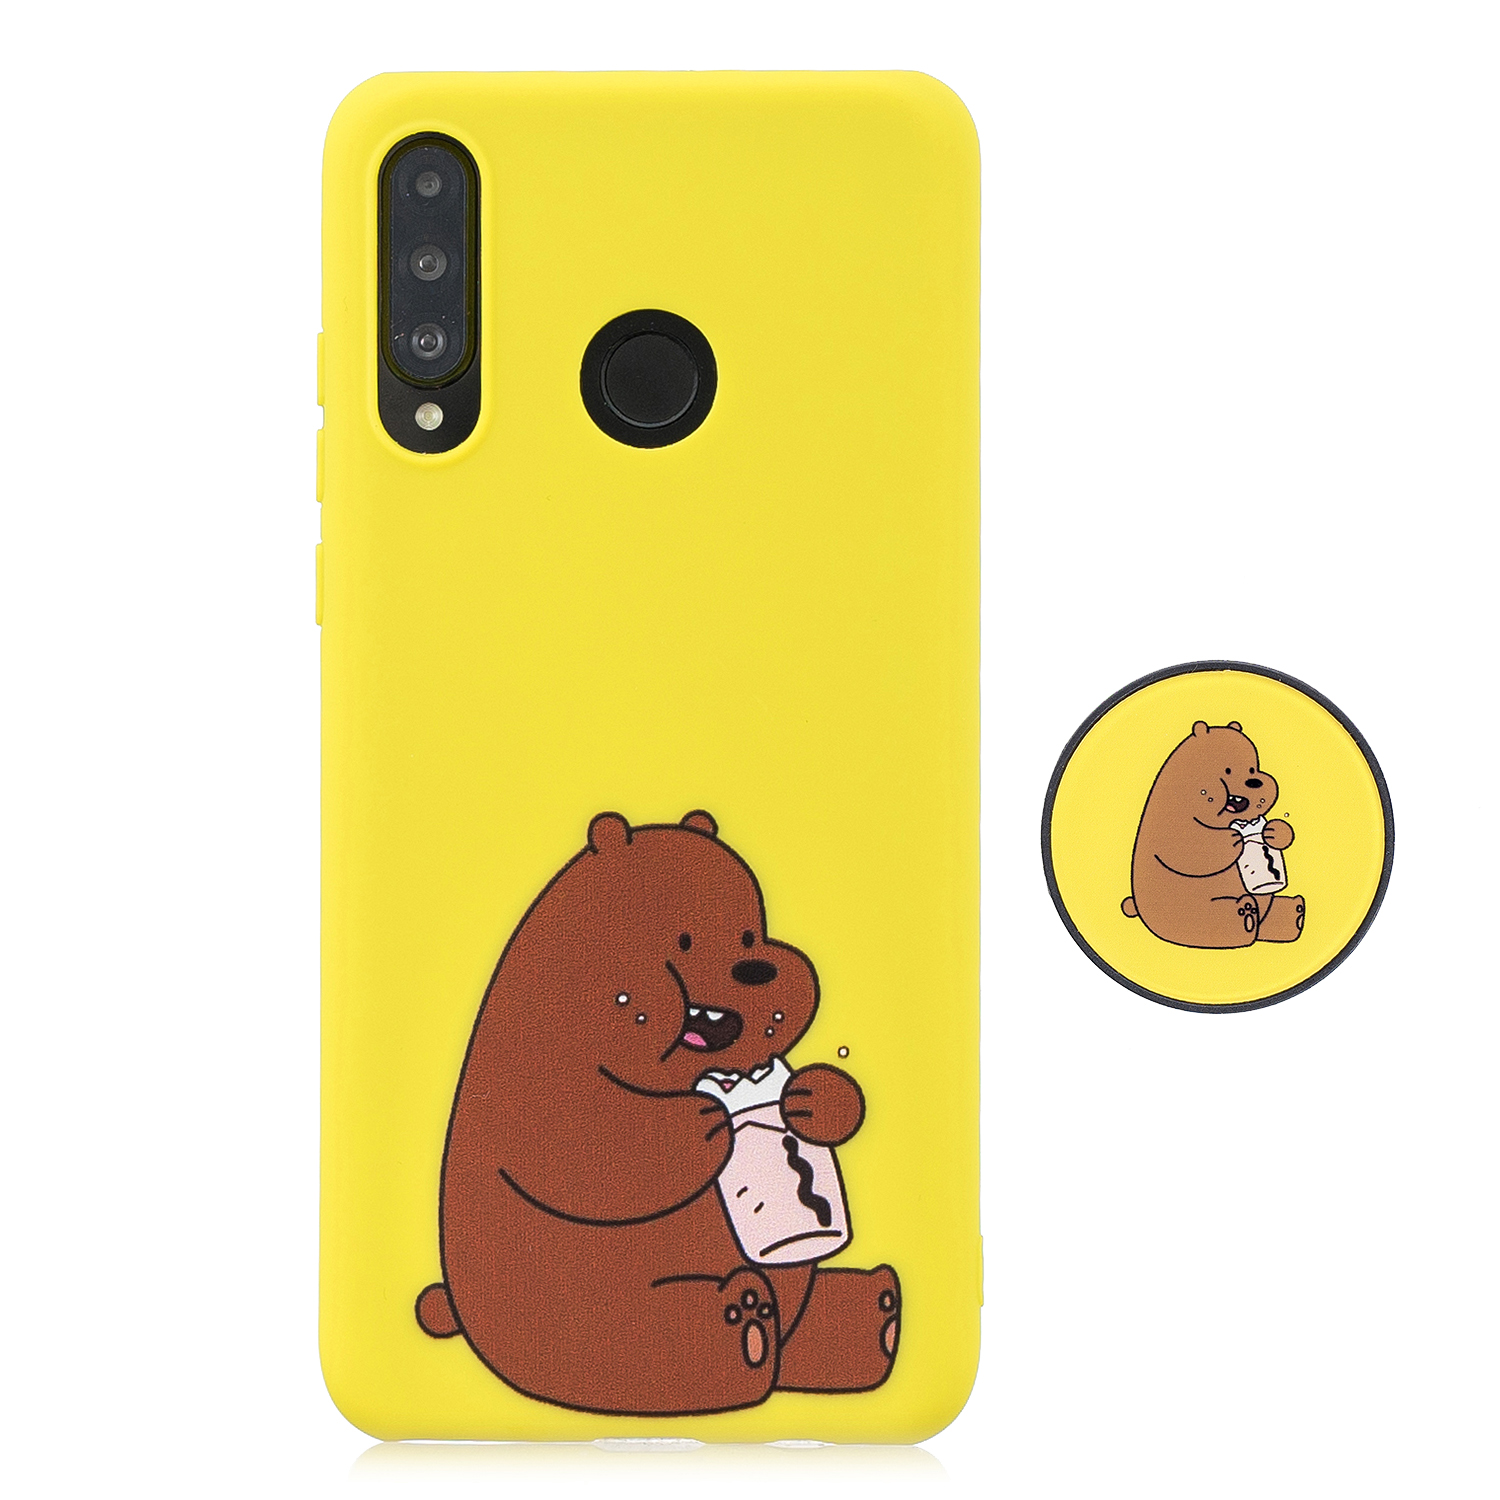 For HUAWEI P30 lite Cute Cartoon Phone Case Ultra Thin Lightweight Soft TPU Phone Case Pure Color Phone Cover with Matching Pattern Adjustable Bracket 8